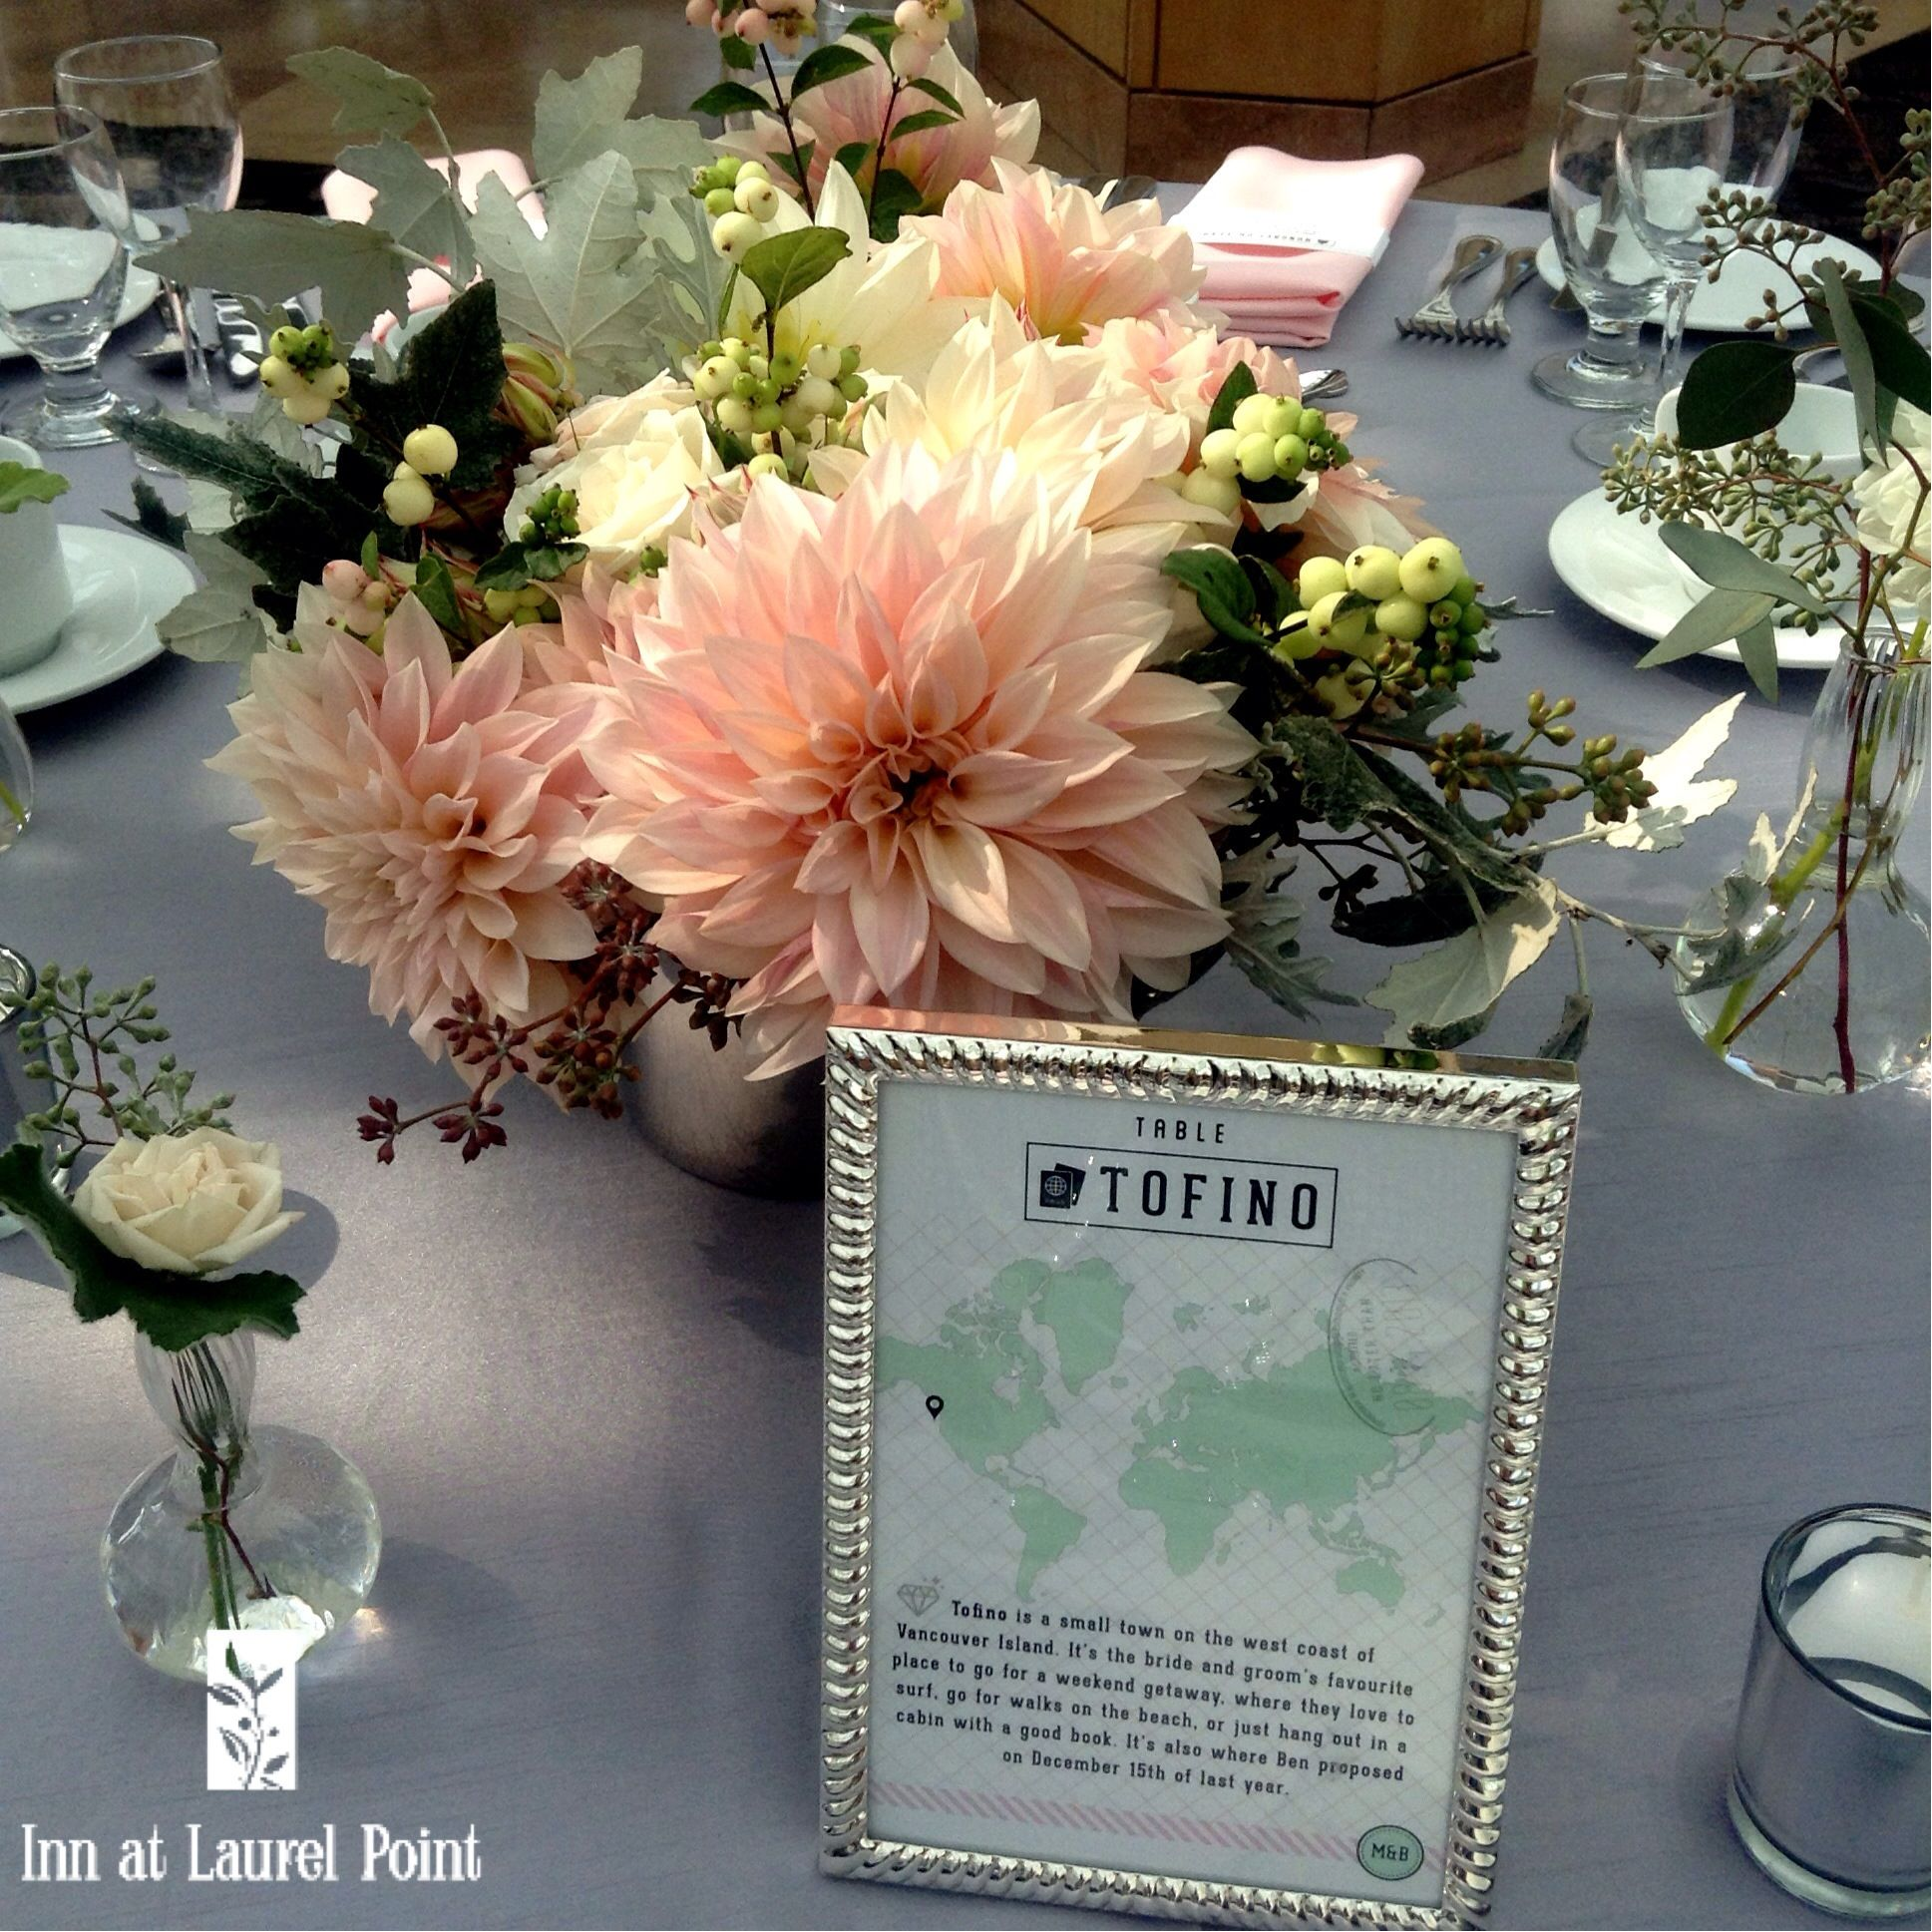 Celebrity Wedding Flowers Centerpieces: Wedding Venues In Victoria, BC (With Images)